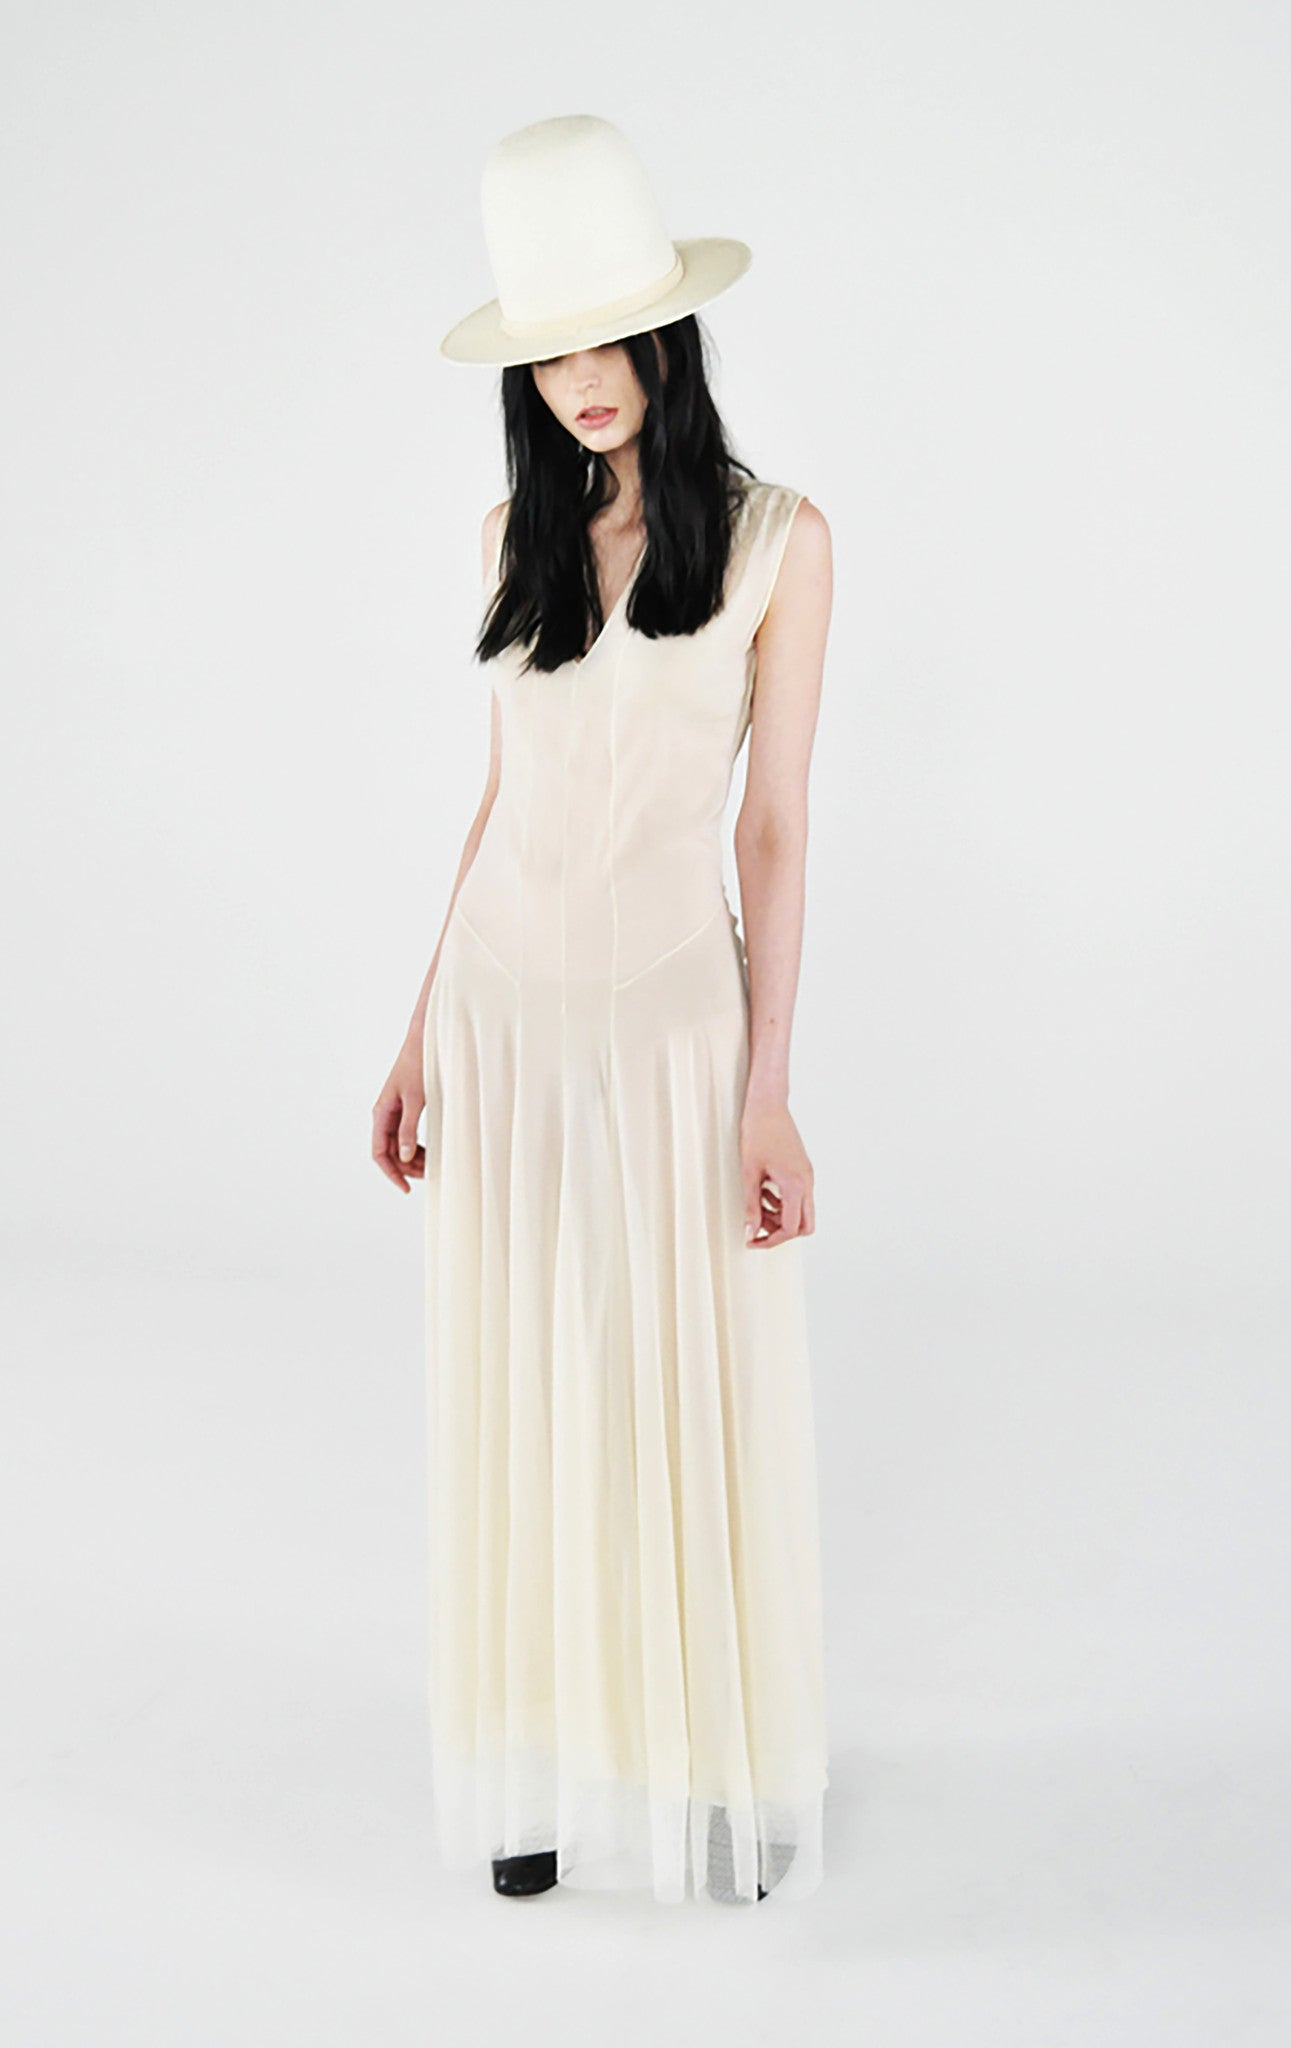 cream ivory white silk chiffon Victorian slip dress Wendy Nichol Fashion clothing designer runway SS13 sleeveless v neck lace trim sheer vintage Victorian slip dress bride bridal wedding straw El topo high crown hat Handmade in NYC New York City Custom color fabric made to Measure tailor tailoring fitted